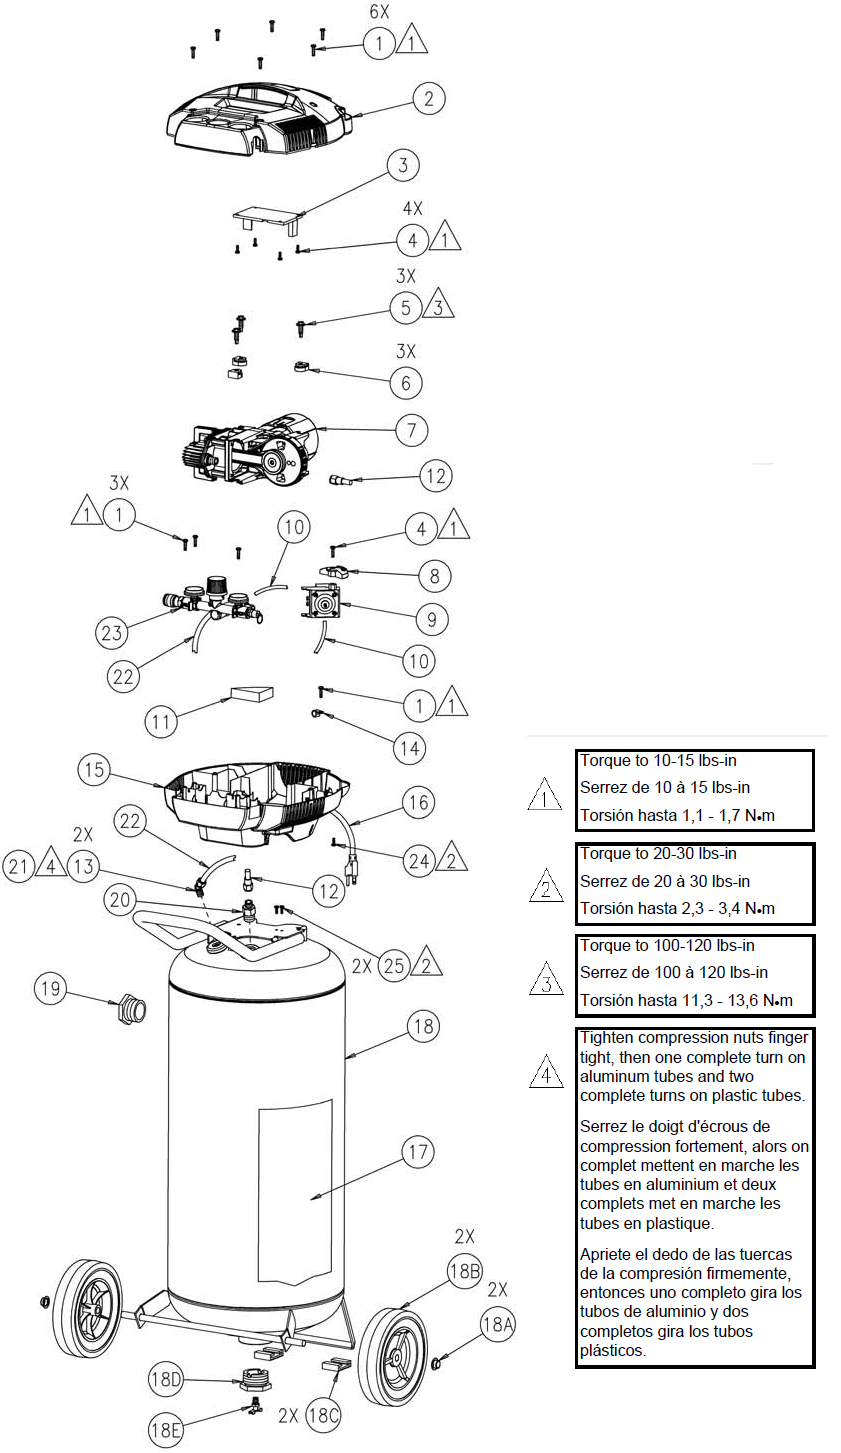 wiring diagram for kobalt air compressor with Kobalt Air  Pressor Wiring Diagram on Here Is A Generic Wiring Diagram For Reference also Puma Air  pressor Wiring Diagram additionally Porter Cable Air  pressor Wiring Diagram in addition Sears Craftsman Air  pressor Parts Diagram besides Kobalt Air  pressor Wiring Diagram.